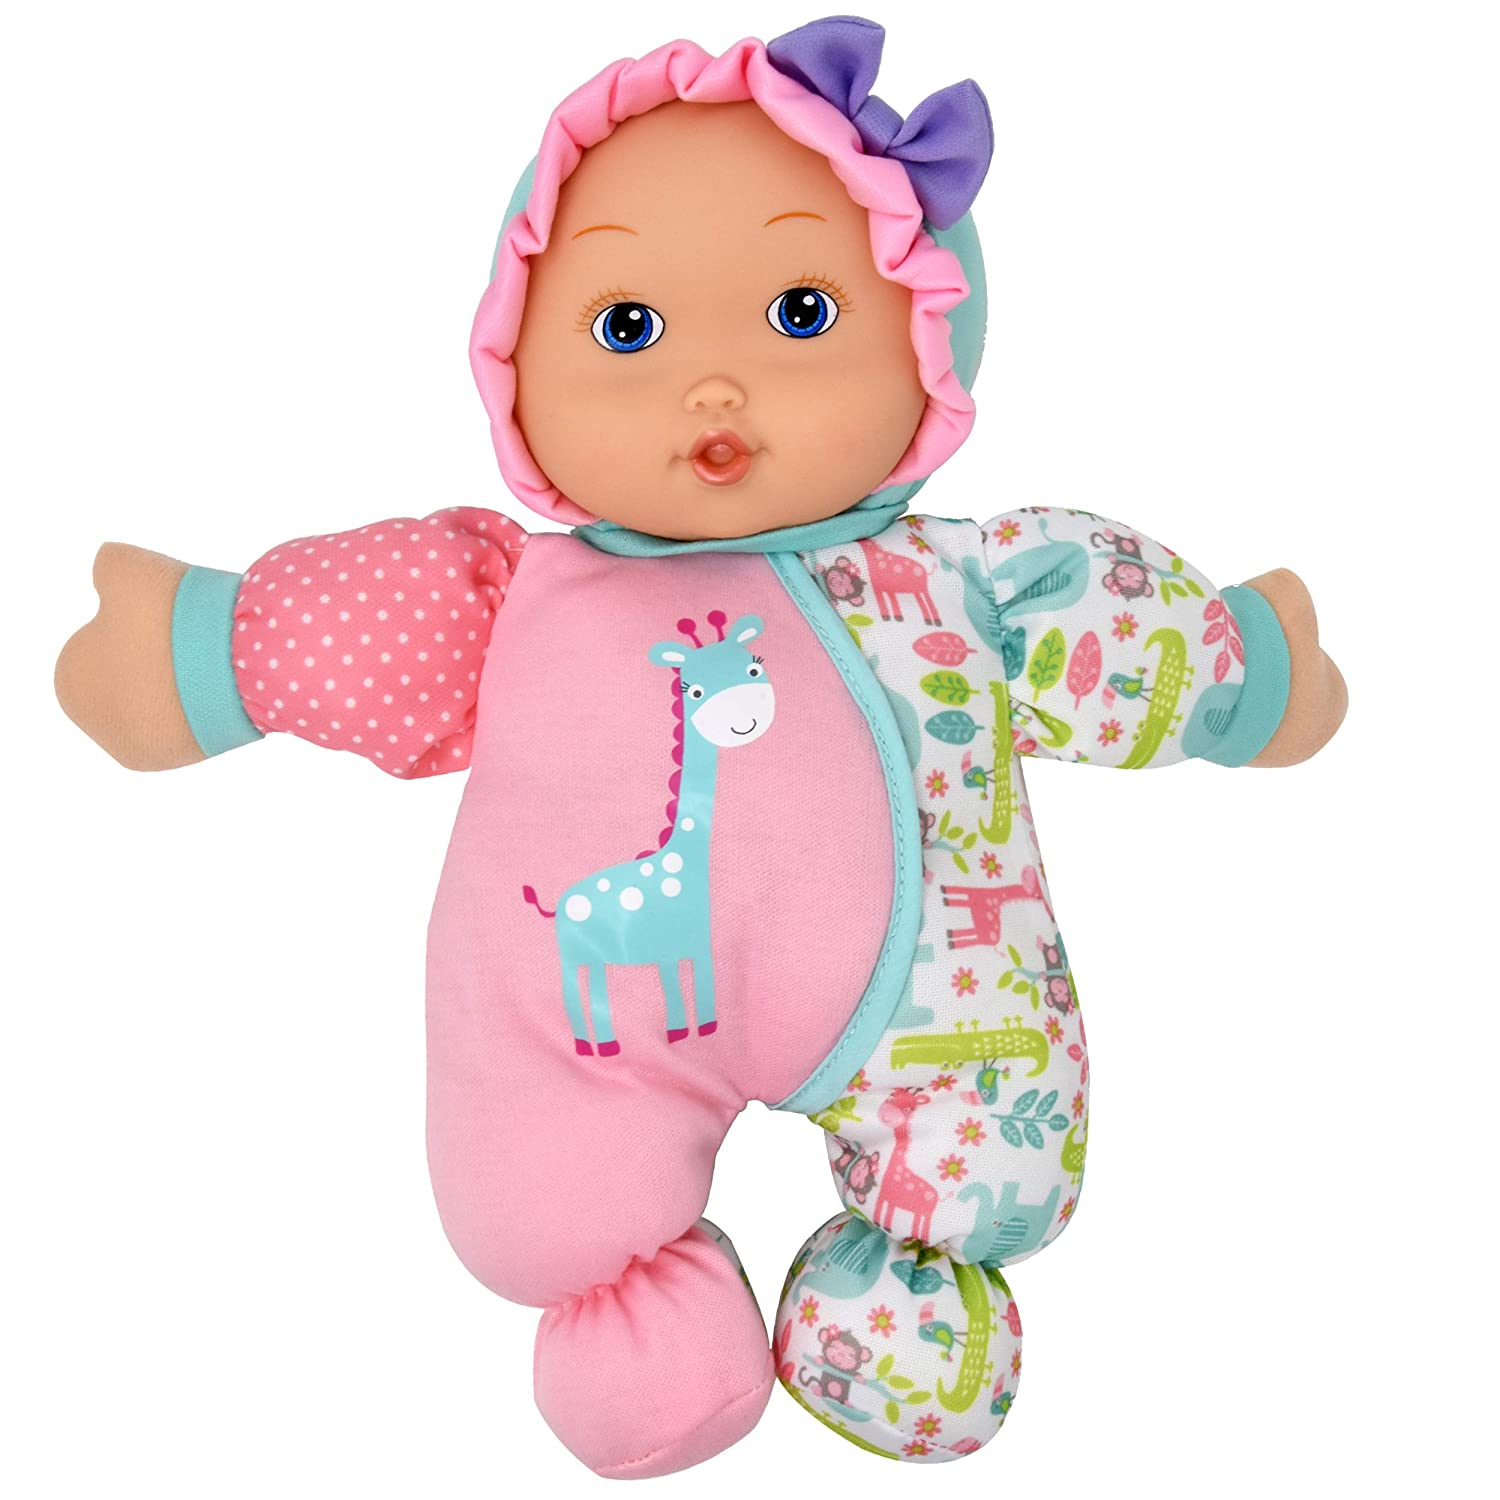 Soft Baby Doll, My First Doll Infants, Toddlers, Girls Boys